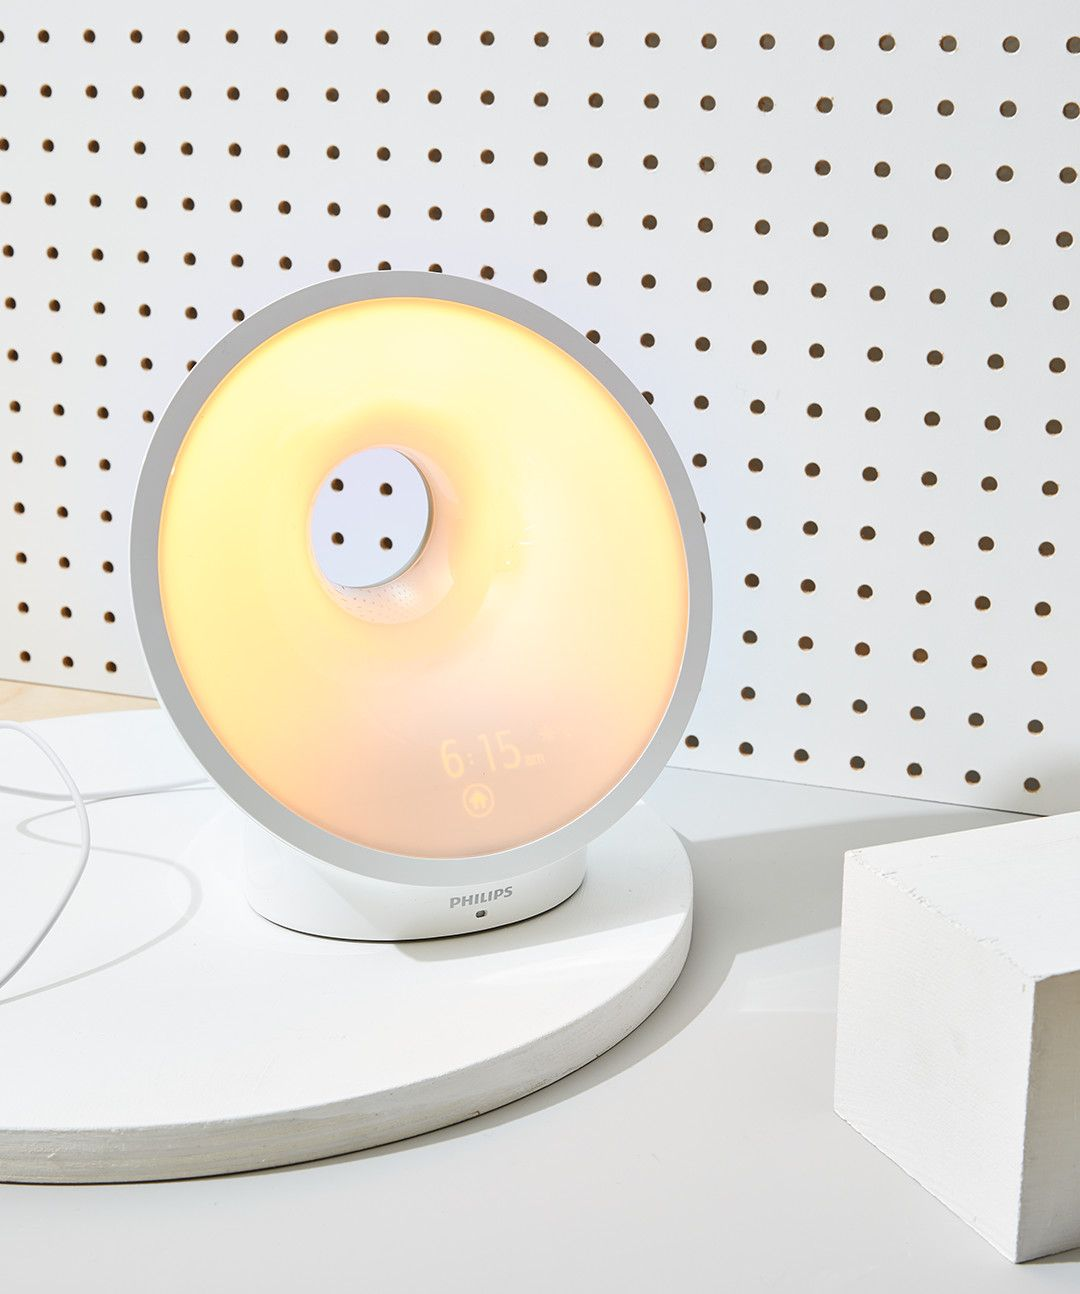 Philips' Wake-Up Light Will Get You Out of Bed When Nothing Else Can